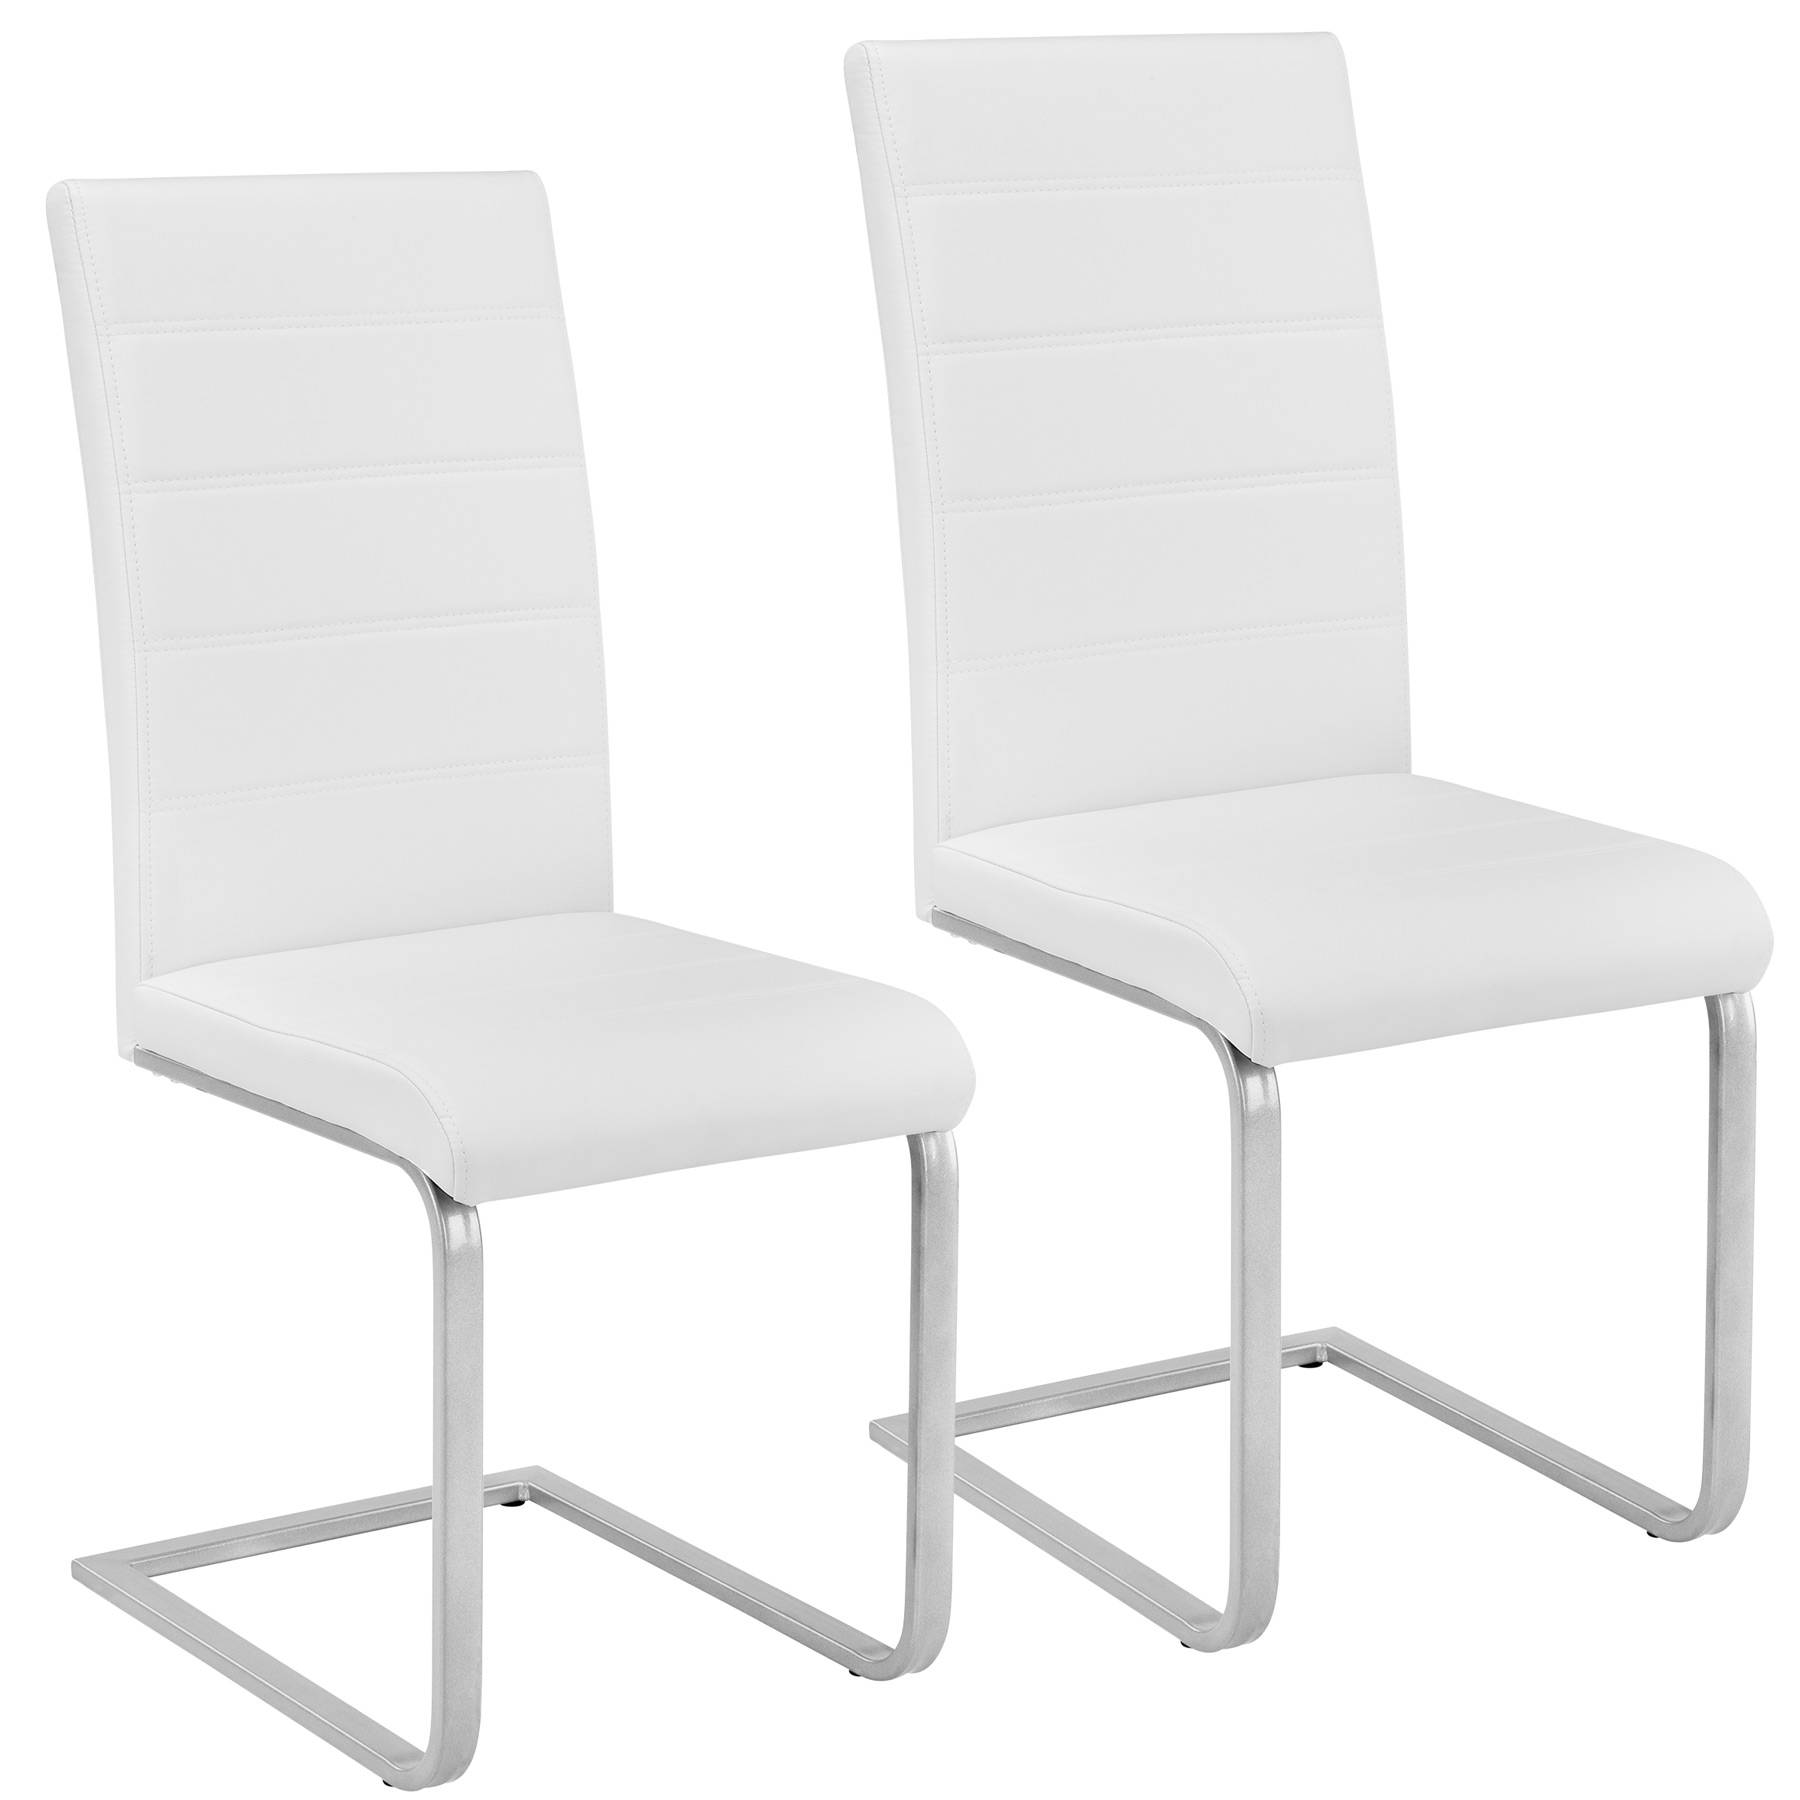 tectake 2 dining chairs rocking chairs - white